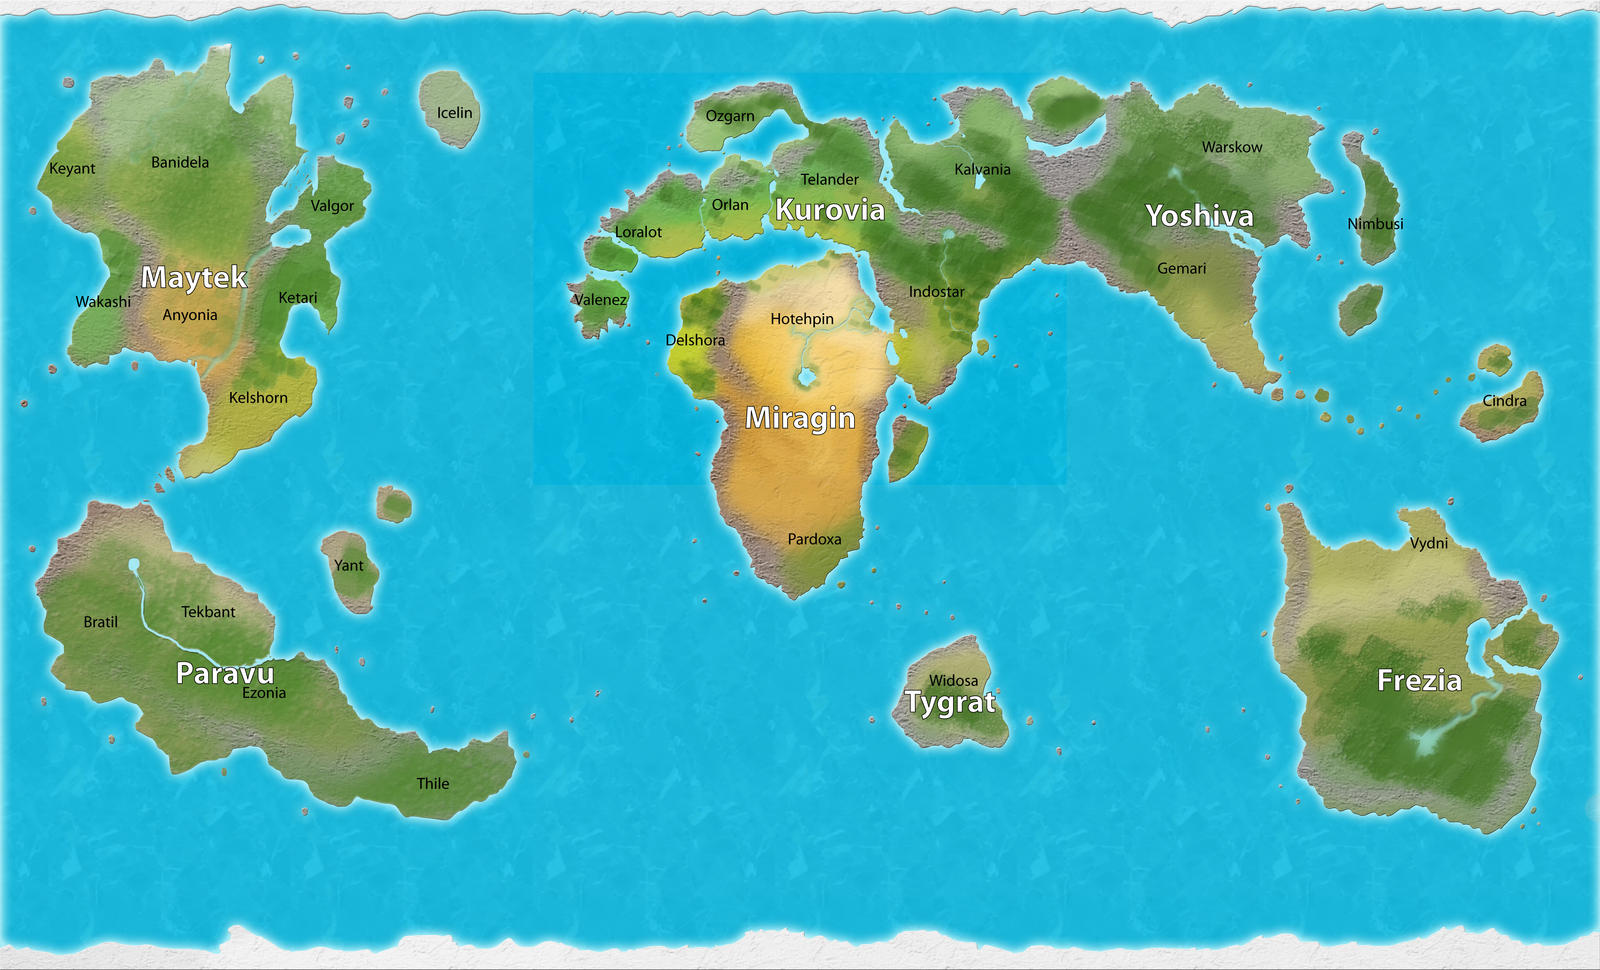 Campaign World Map With Labels By Manticoresoul On DeviantArt - World map with labels